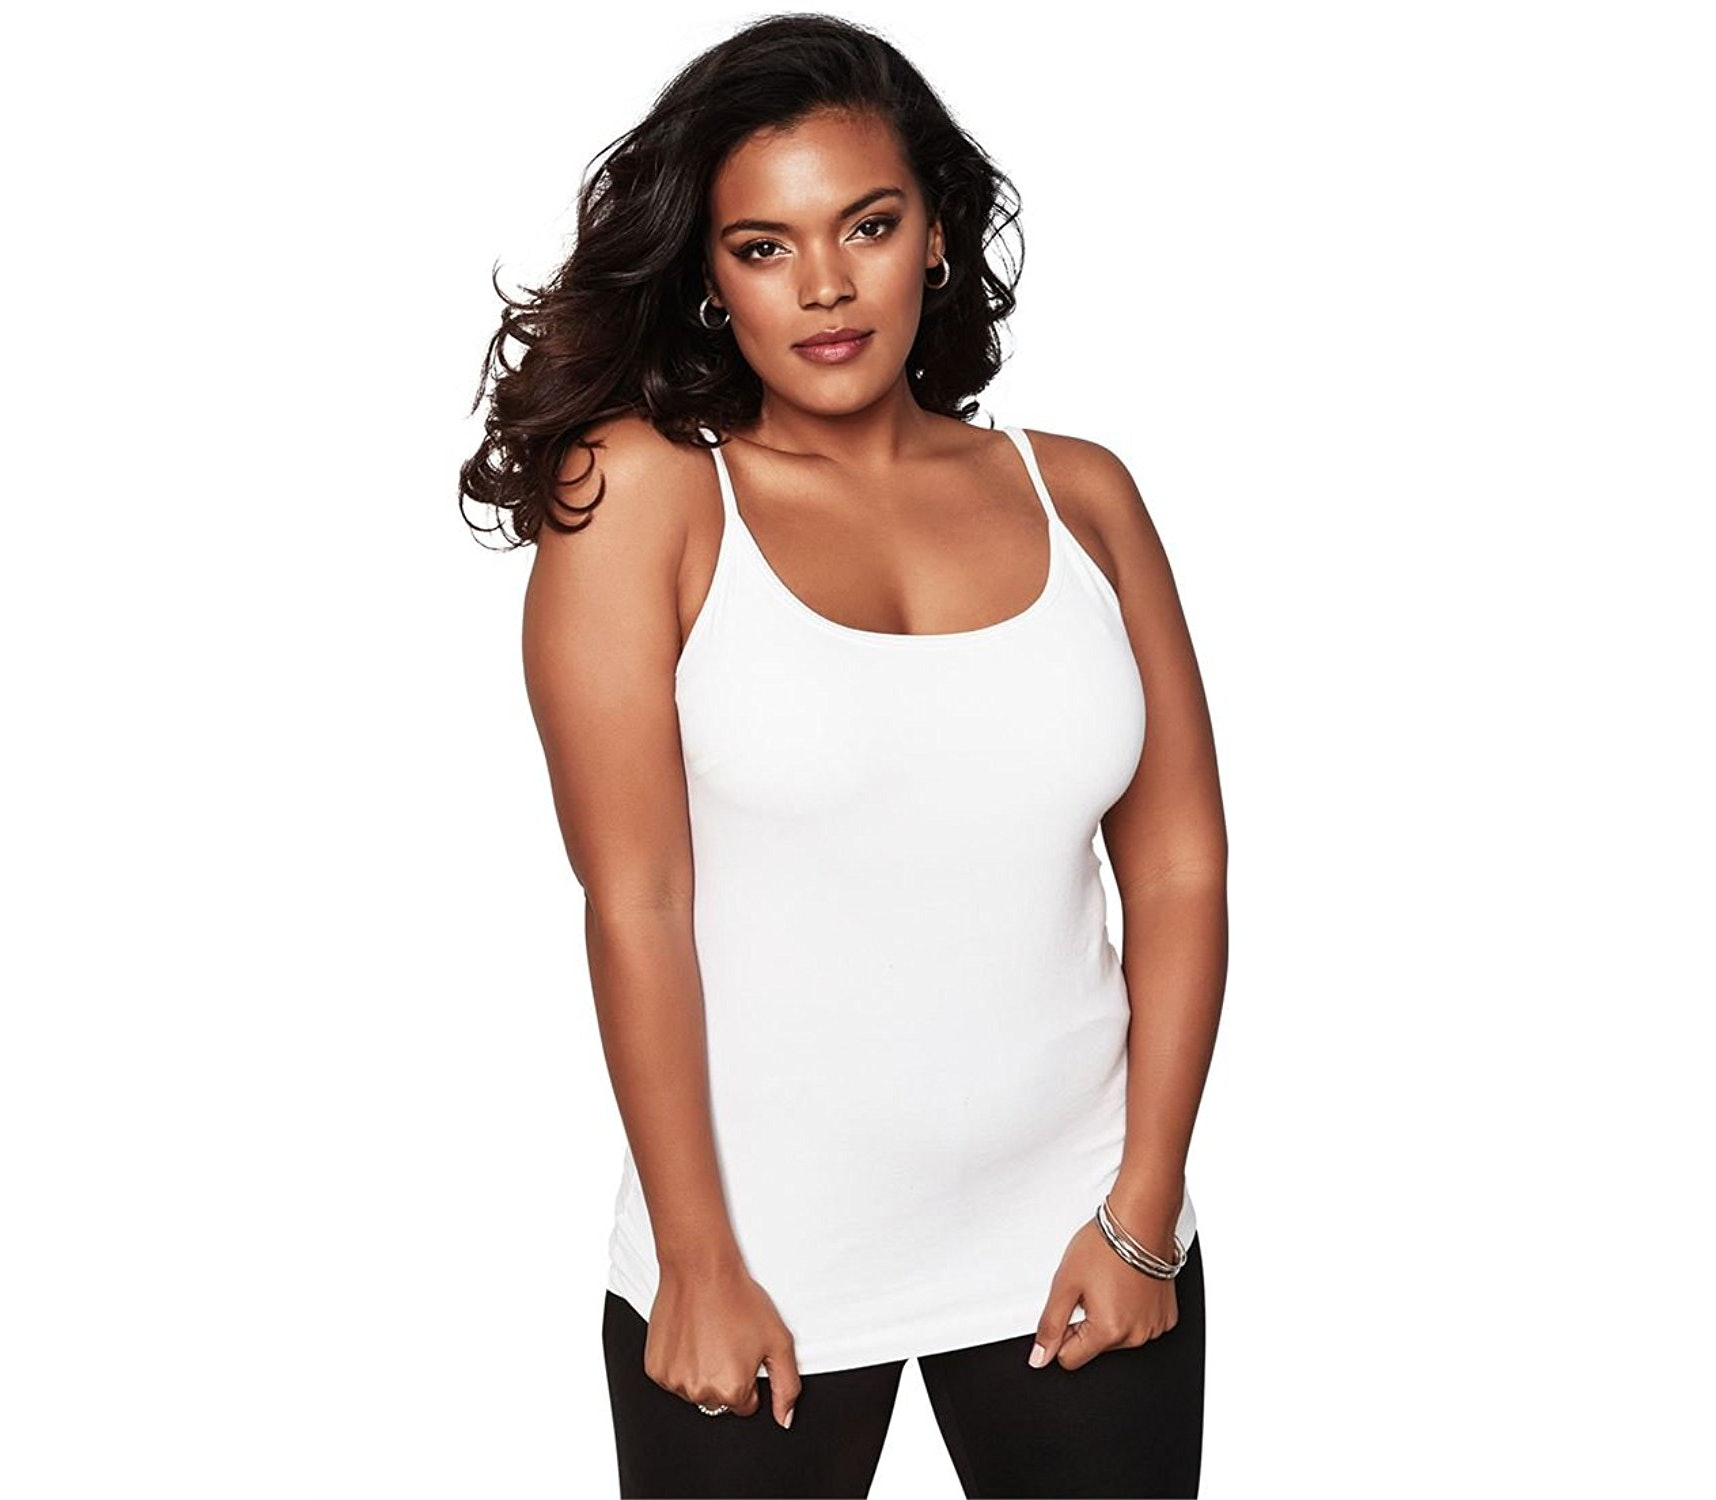 aca303654a387 The 7 Best Camisoles With Built-In Bras